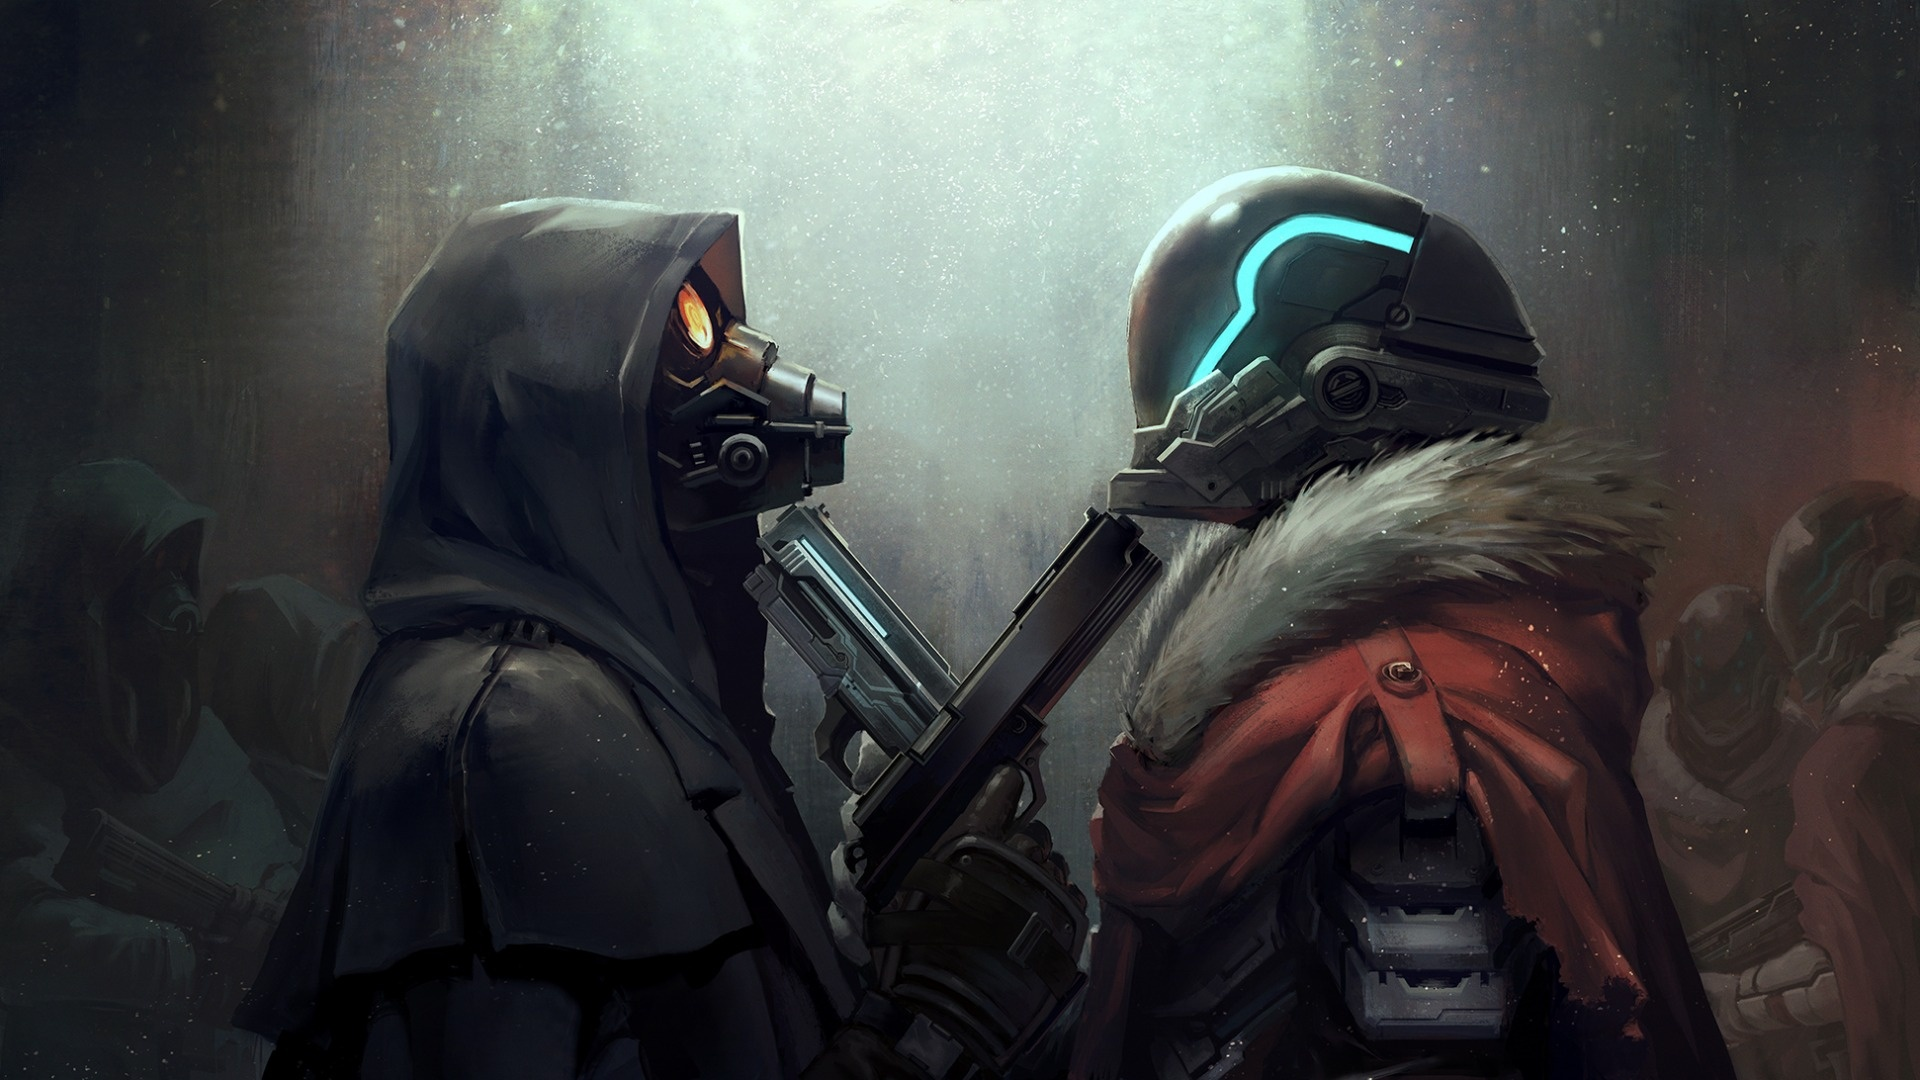 Gas Mask Soldiers Gun Wallpapers 1920x1080 485636